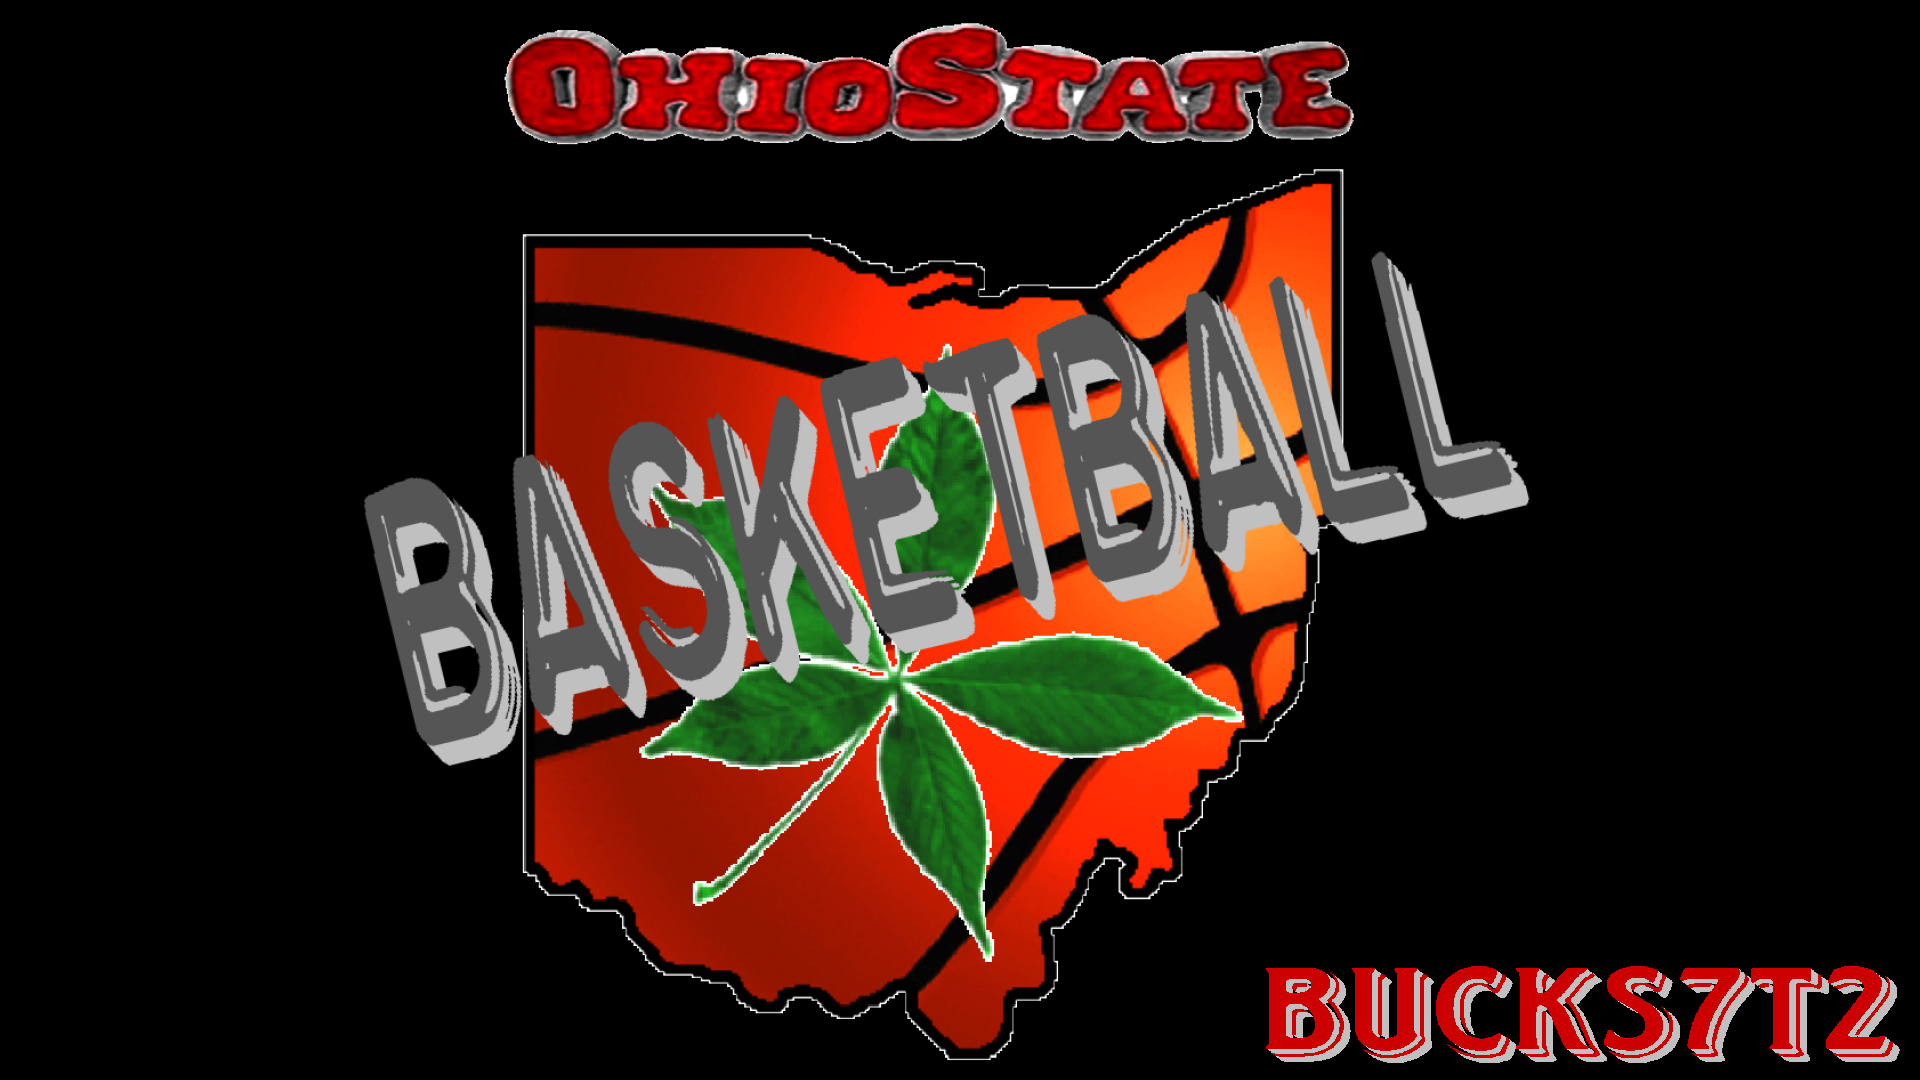 OHIO STATE BUCKEYES BASKETBALL